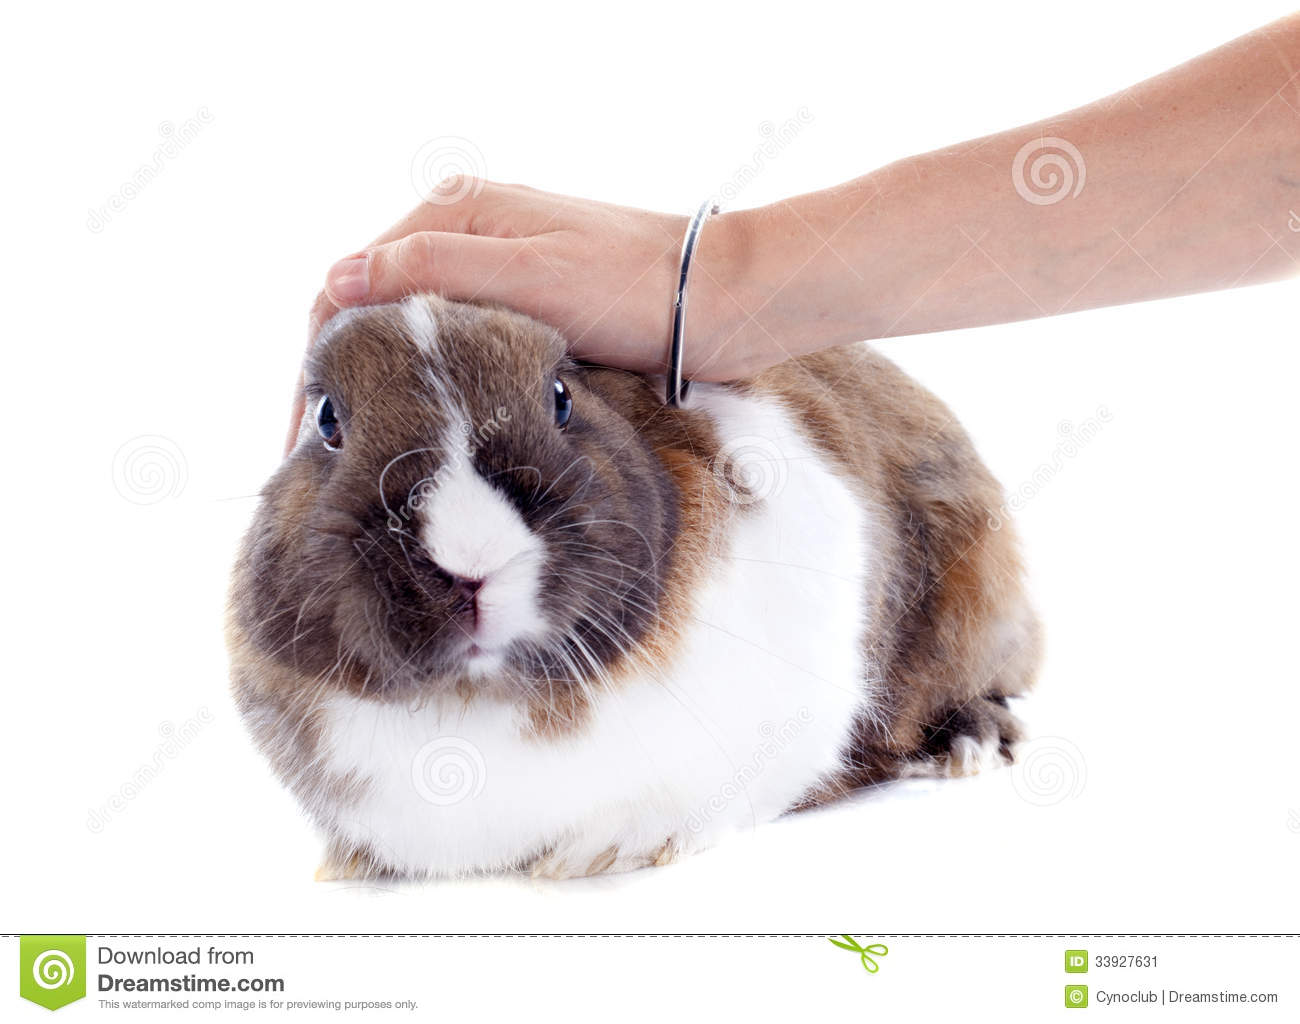 how to kill rabbit in hand